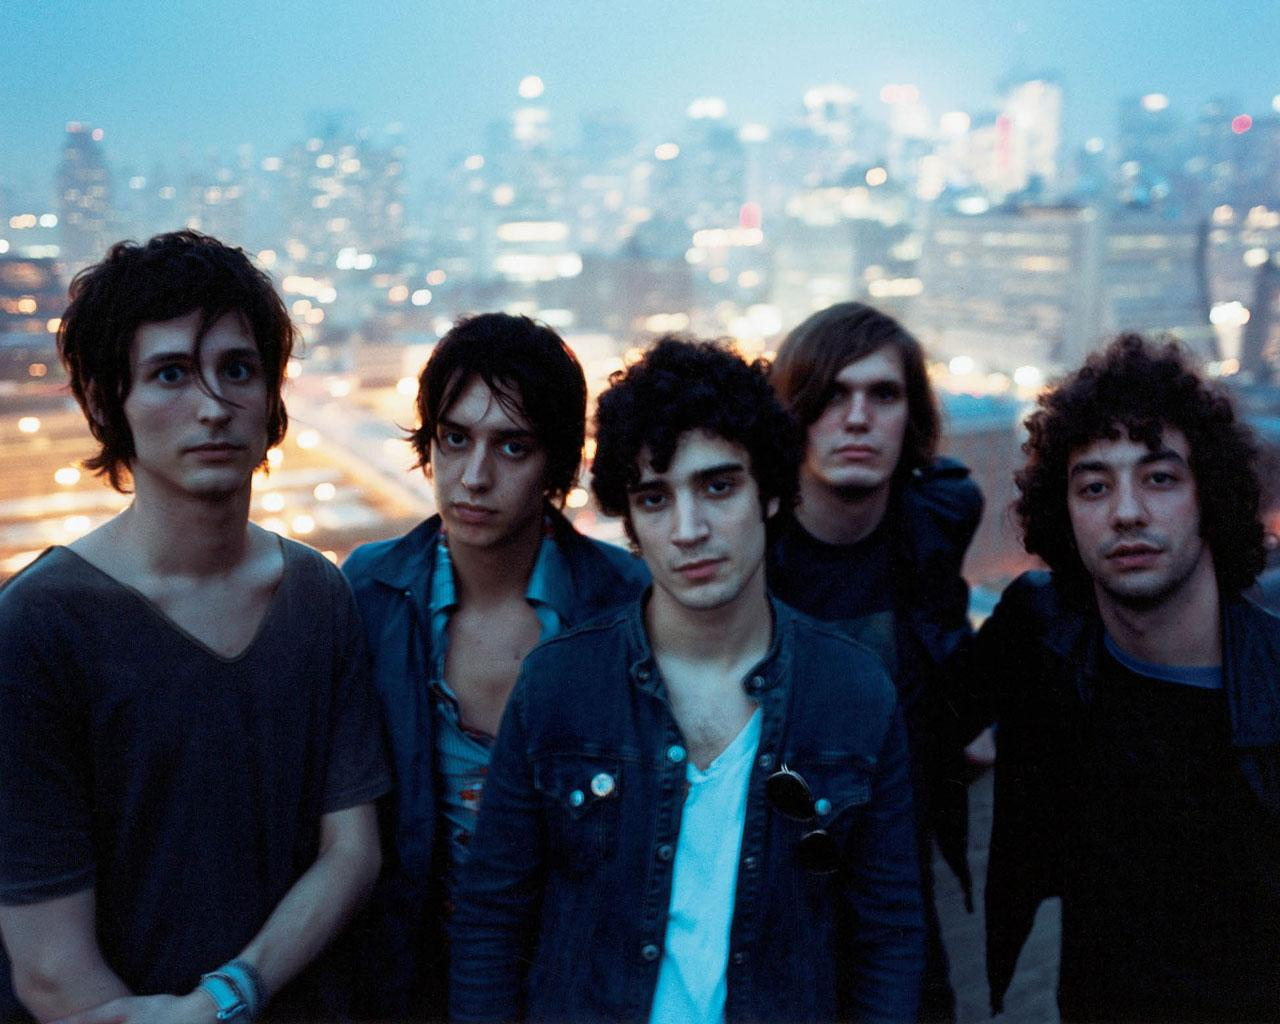 Best band the strokes 1280x1024 wallpaper 1 the strokes wallpaper 1 1280 x 1024 altavistaventures Gallery